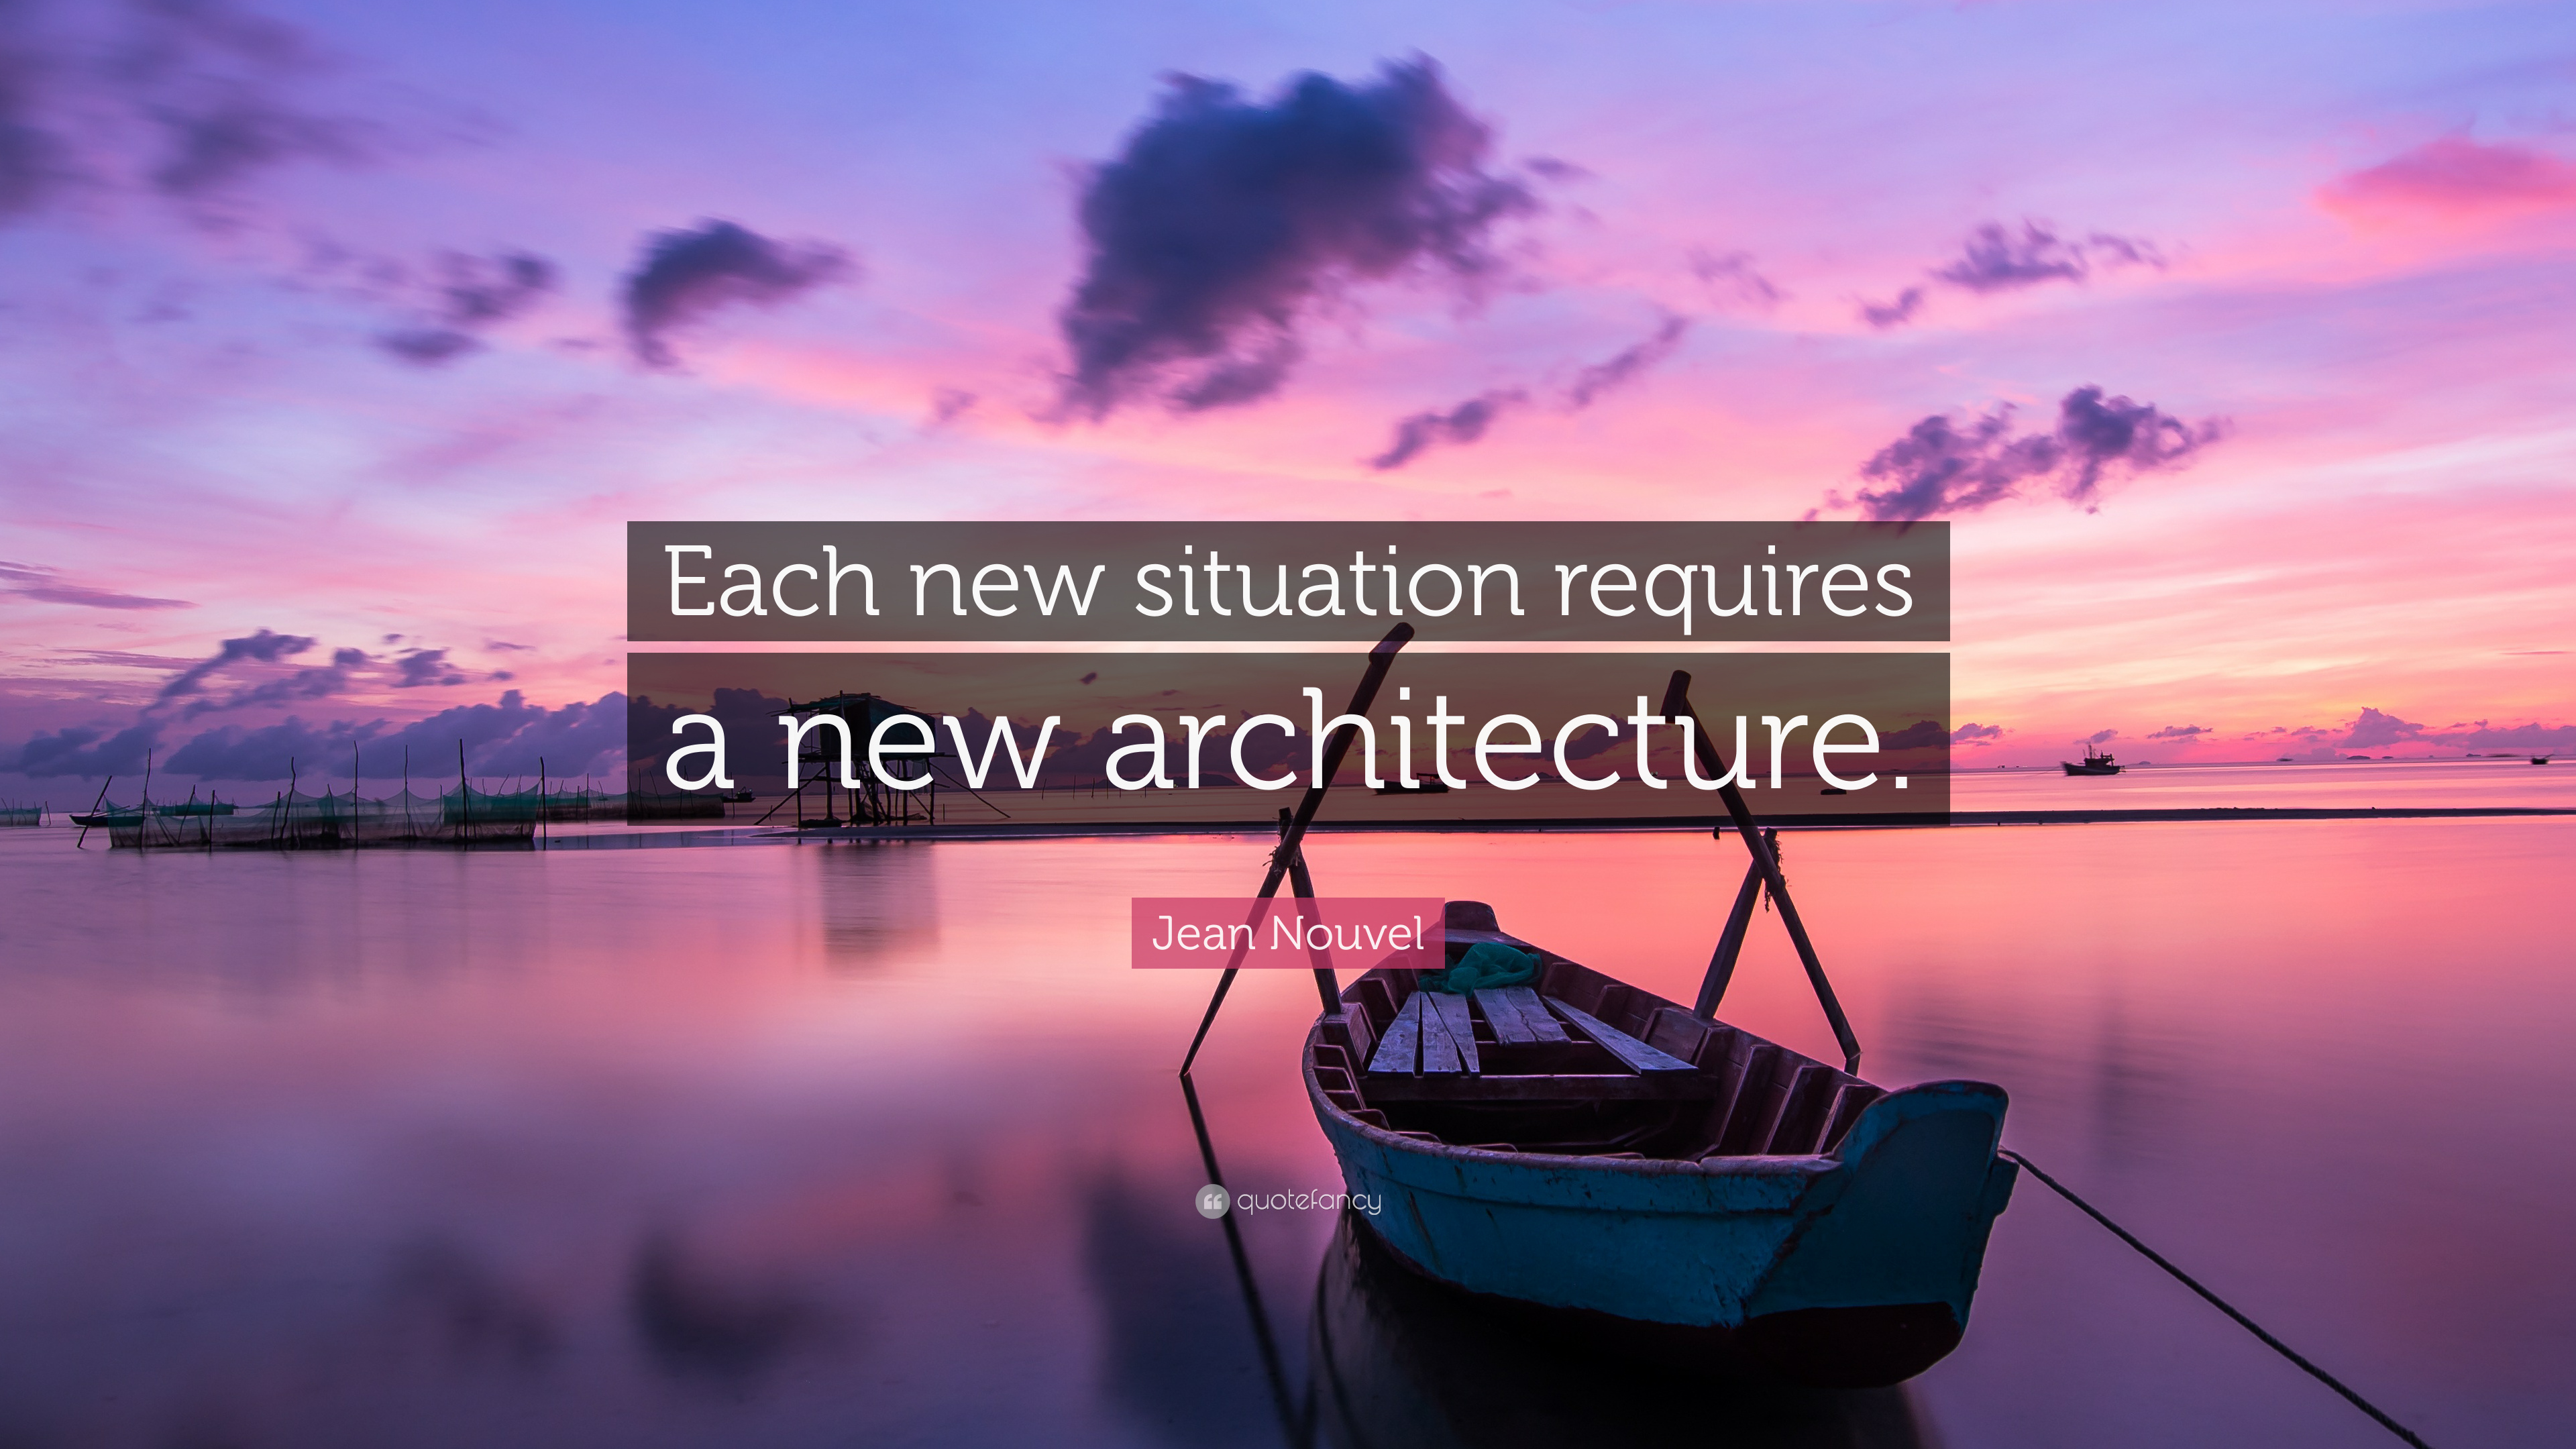 Afbeeldingsresultaat voor each new situation requires a new architecture